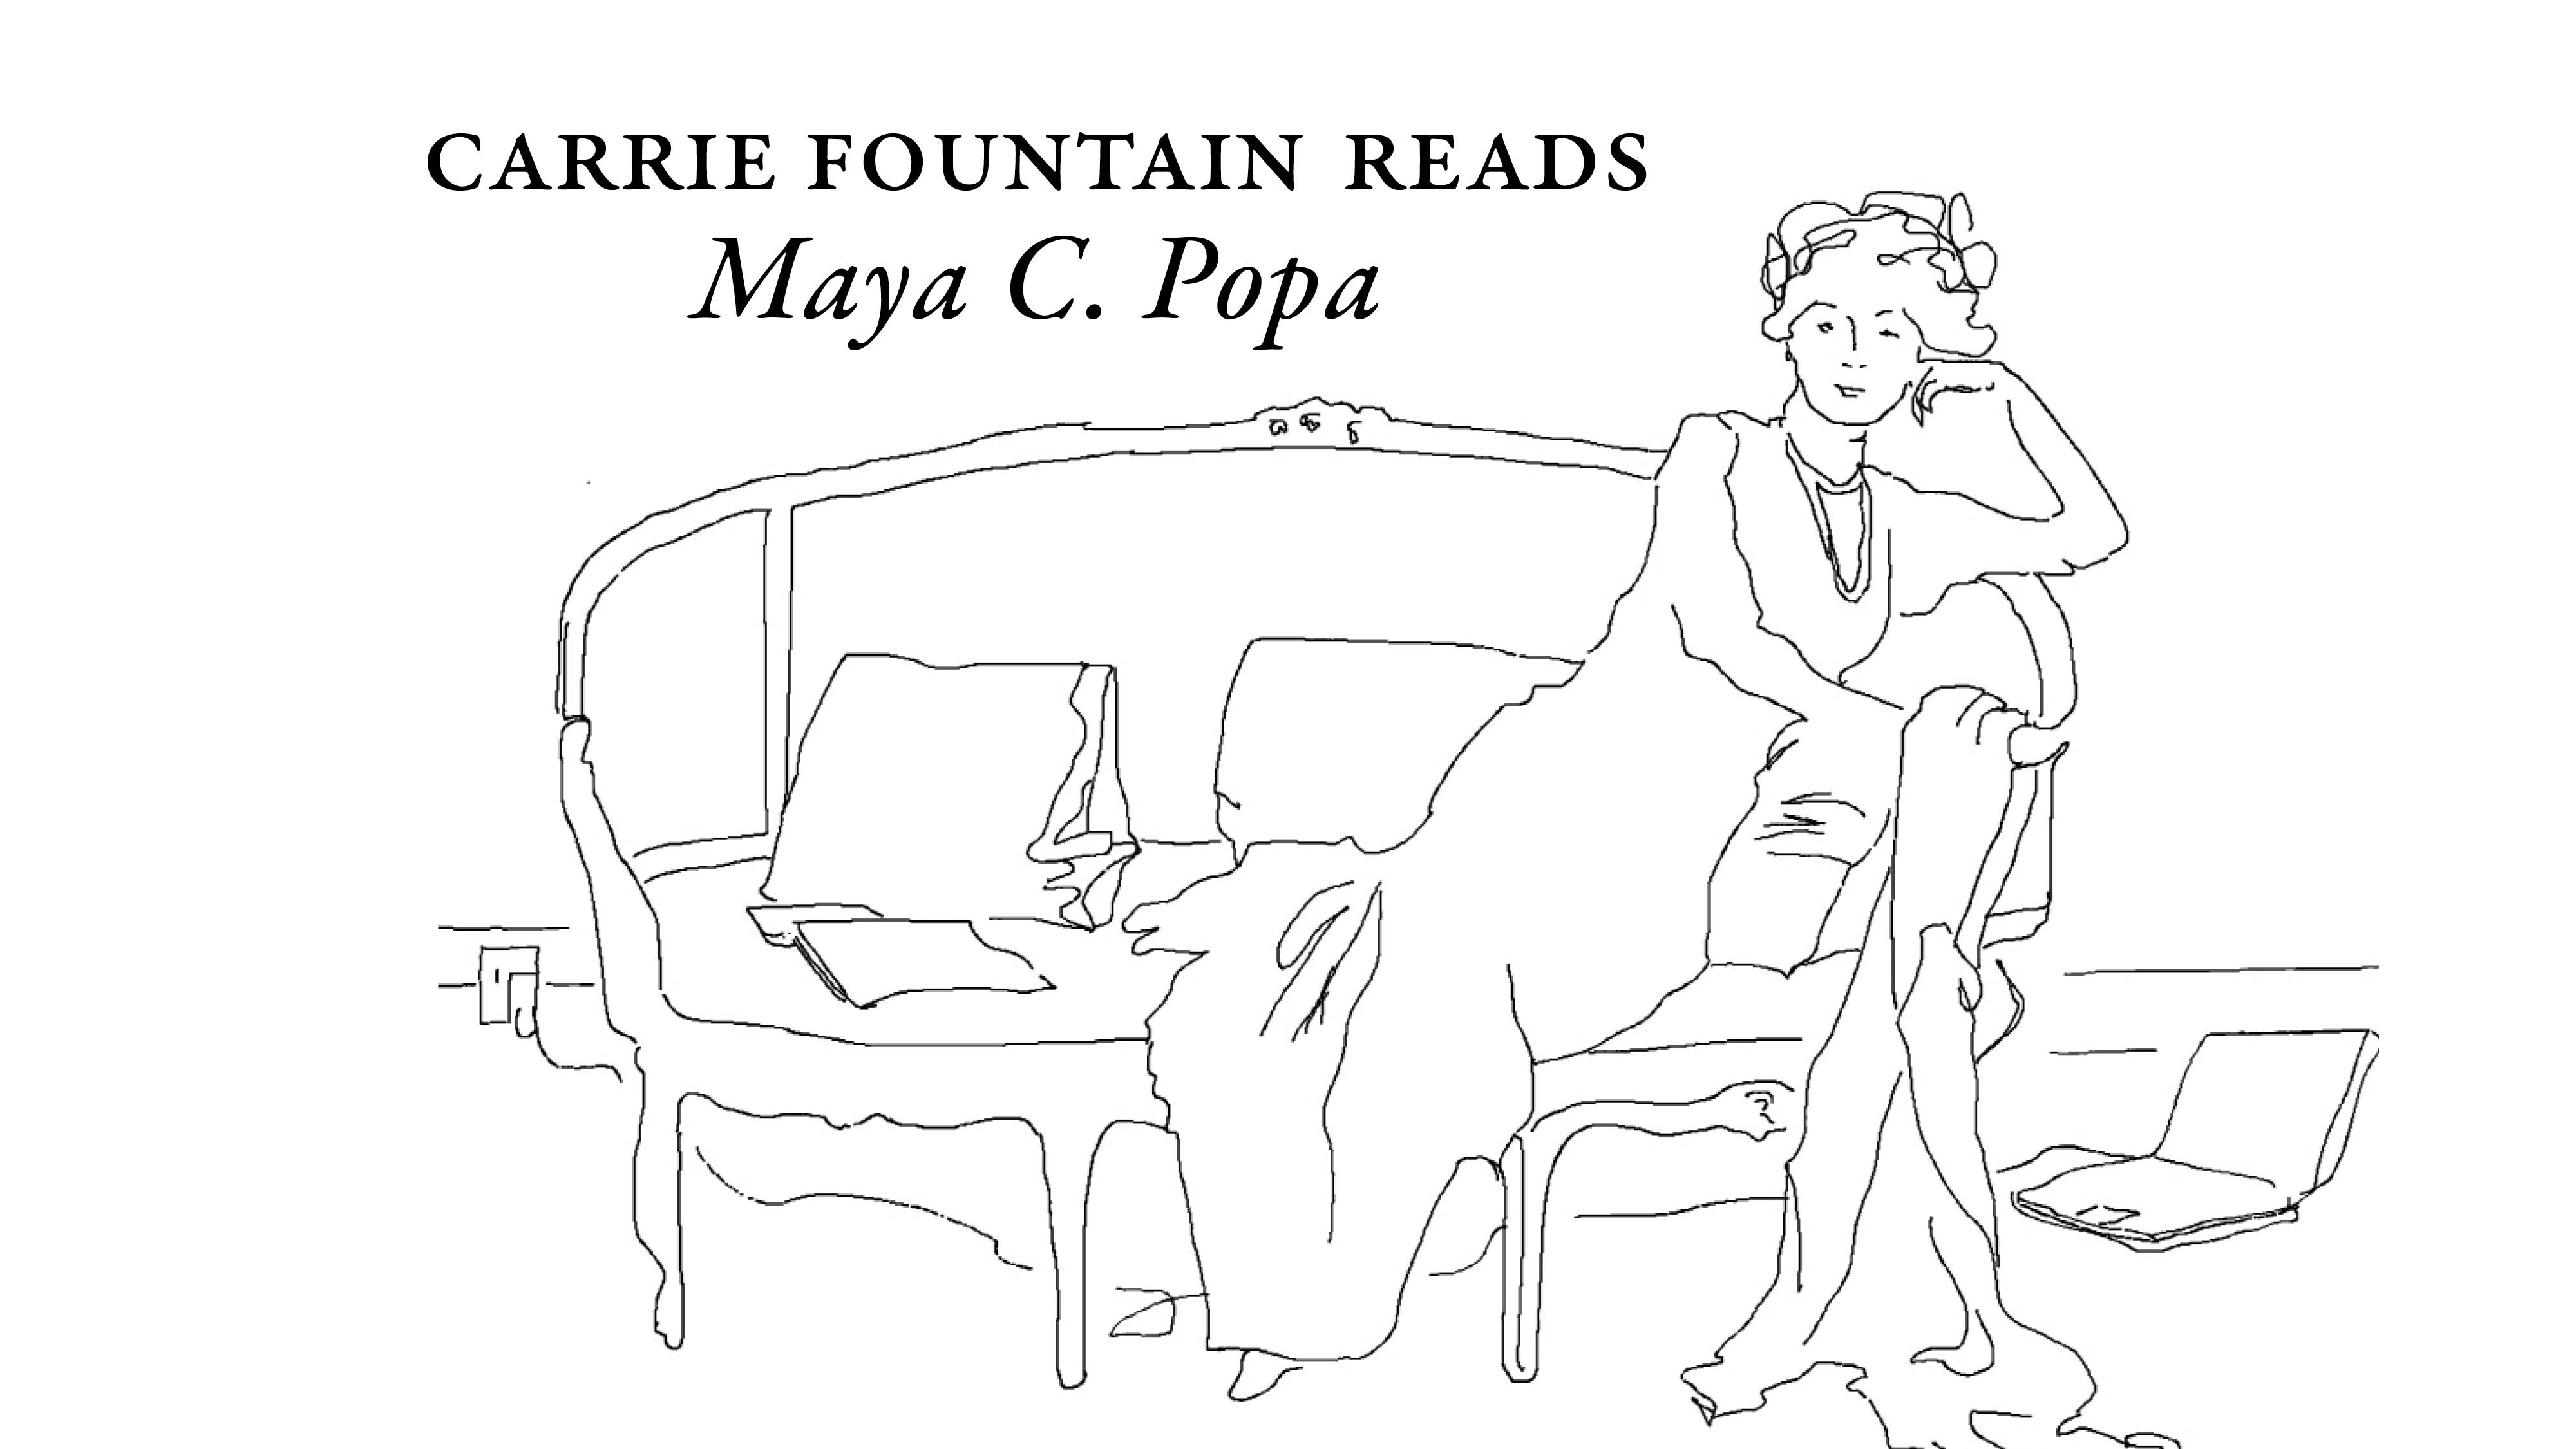 Poets on Couches: Carrie Fountain Reads Maya C. Popa